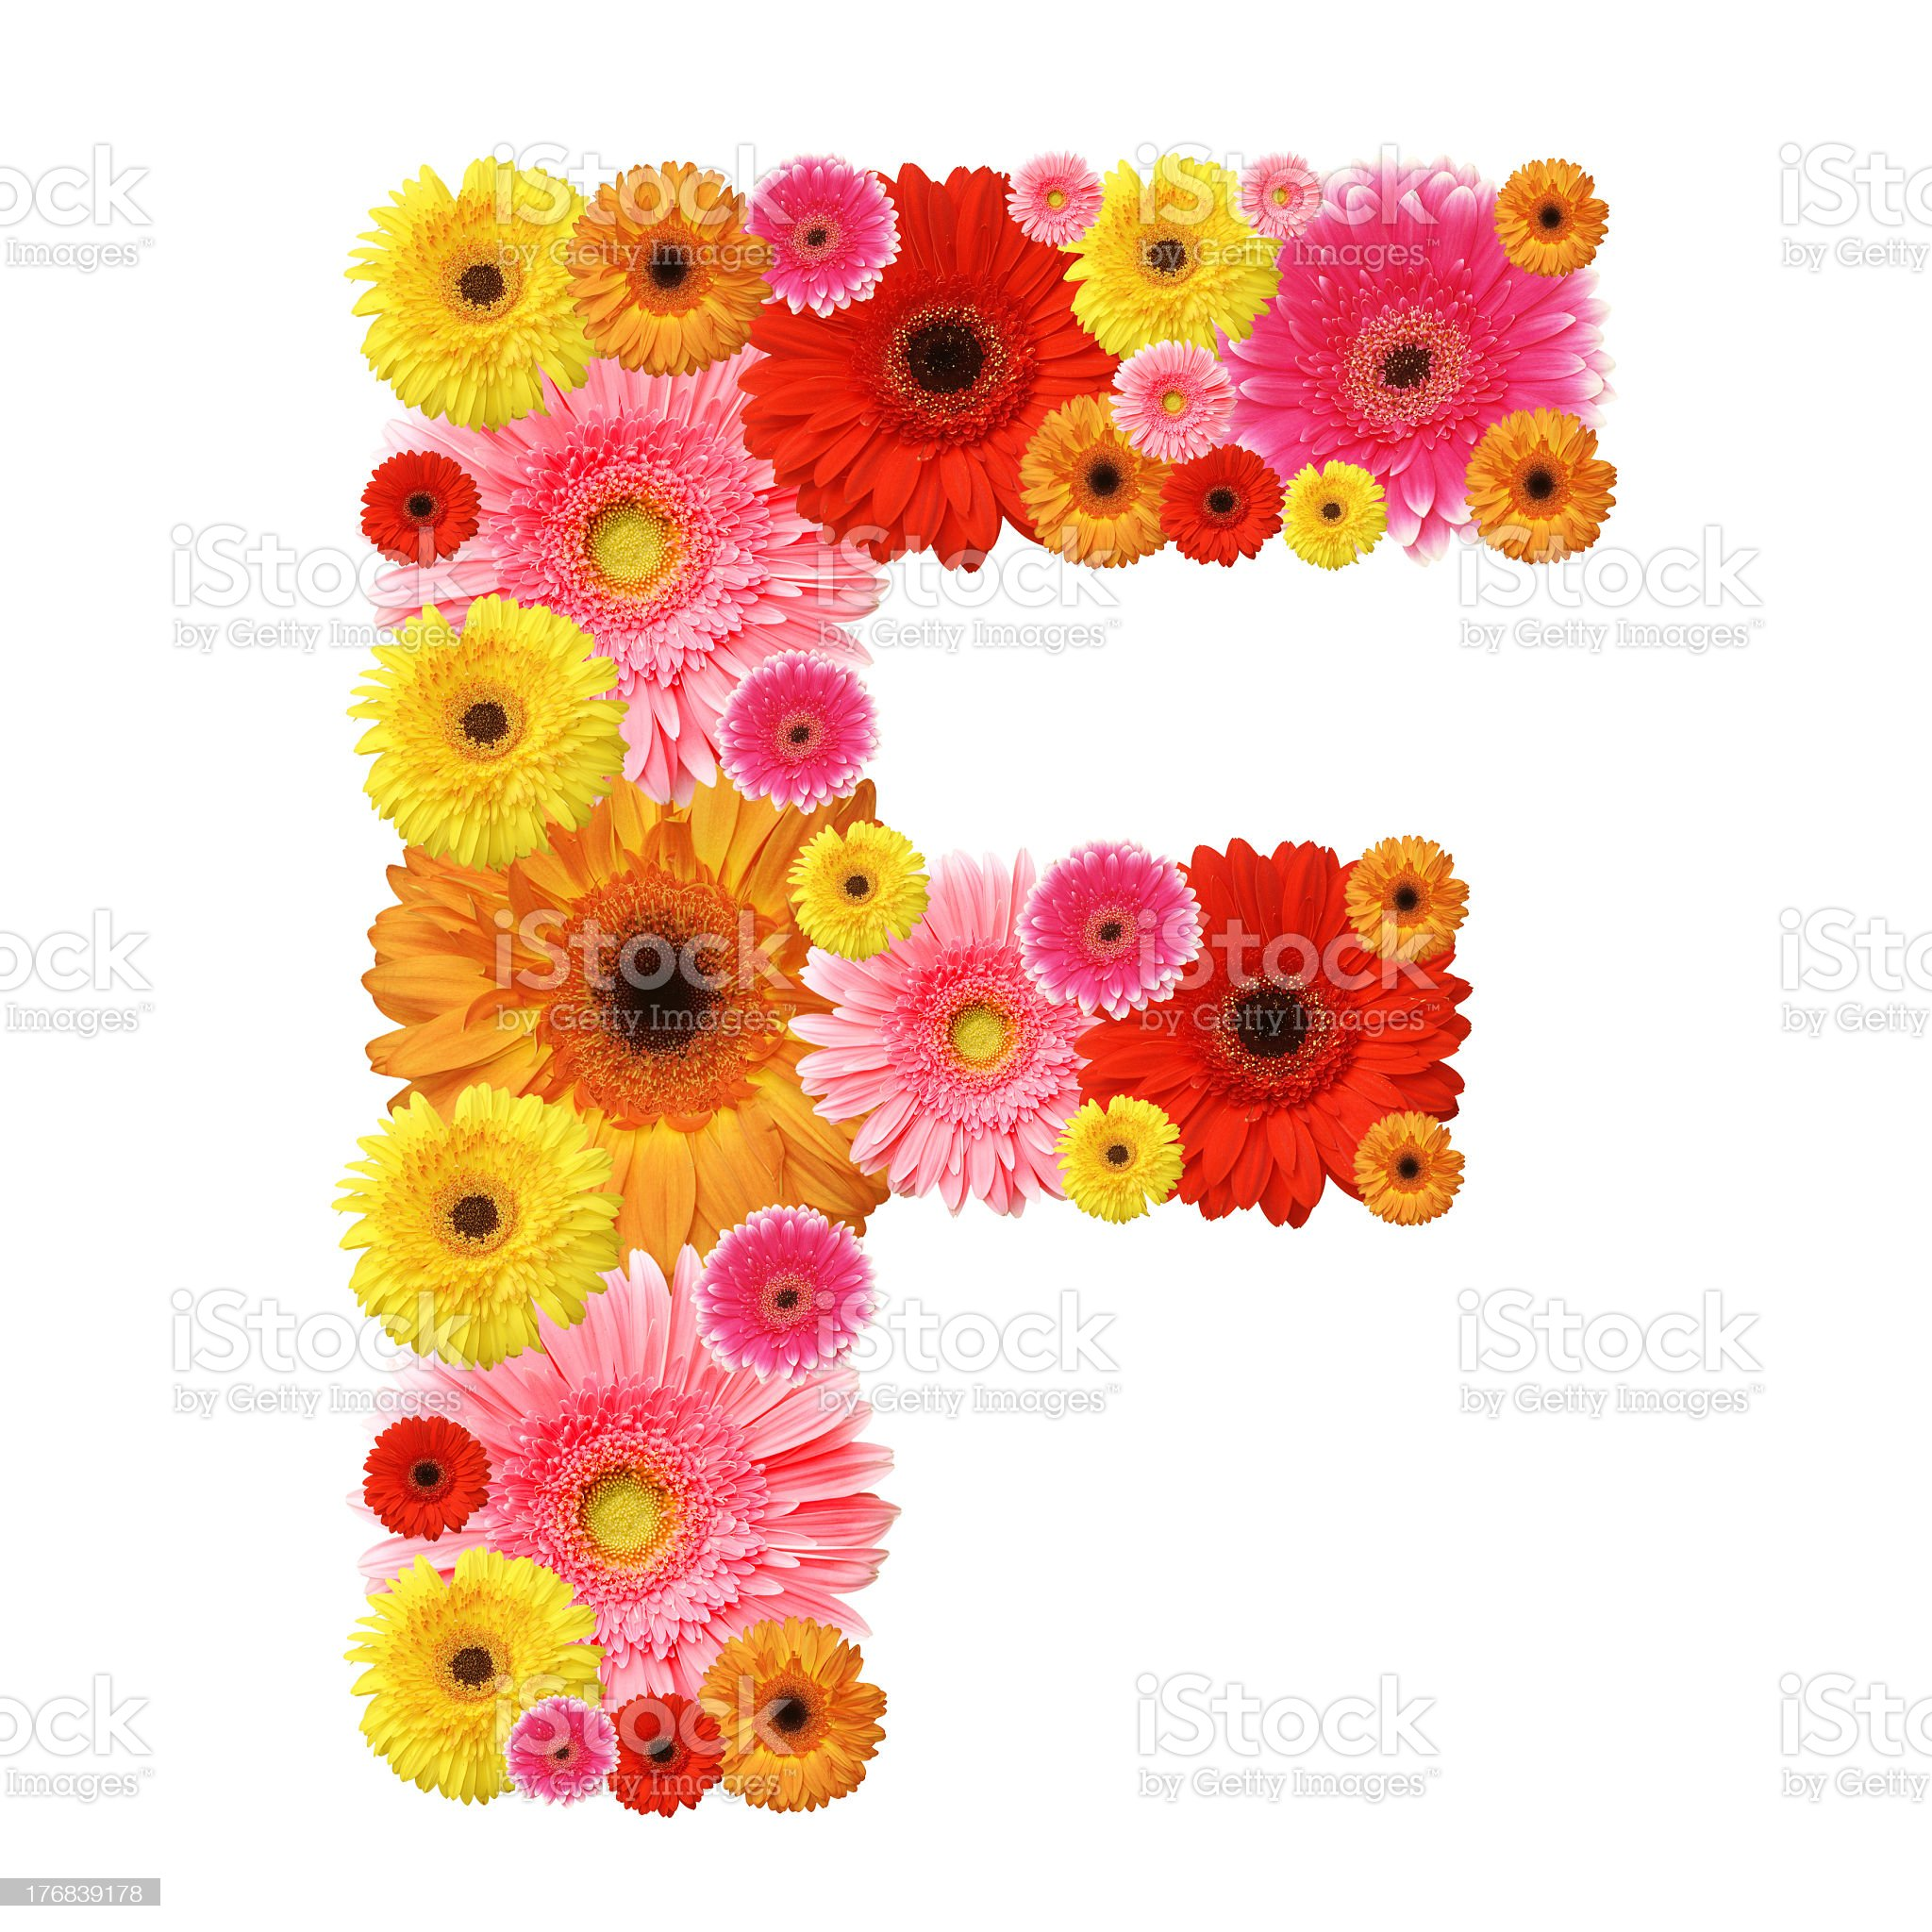 A floral arrangement in the shape of the letter F royalty-free stock photo